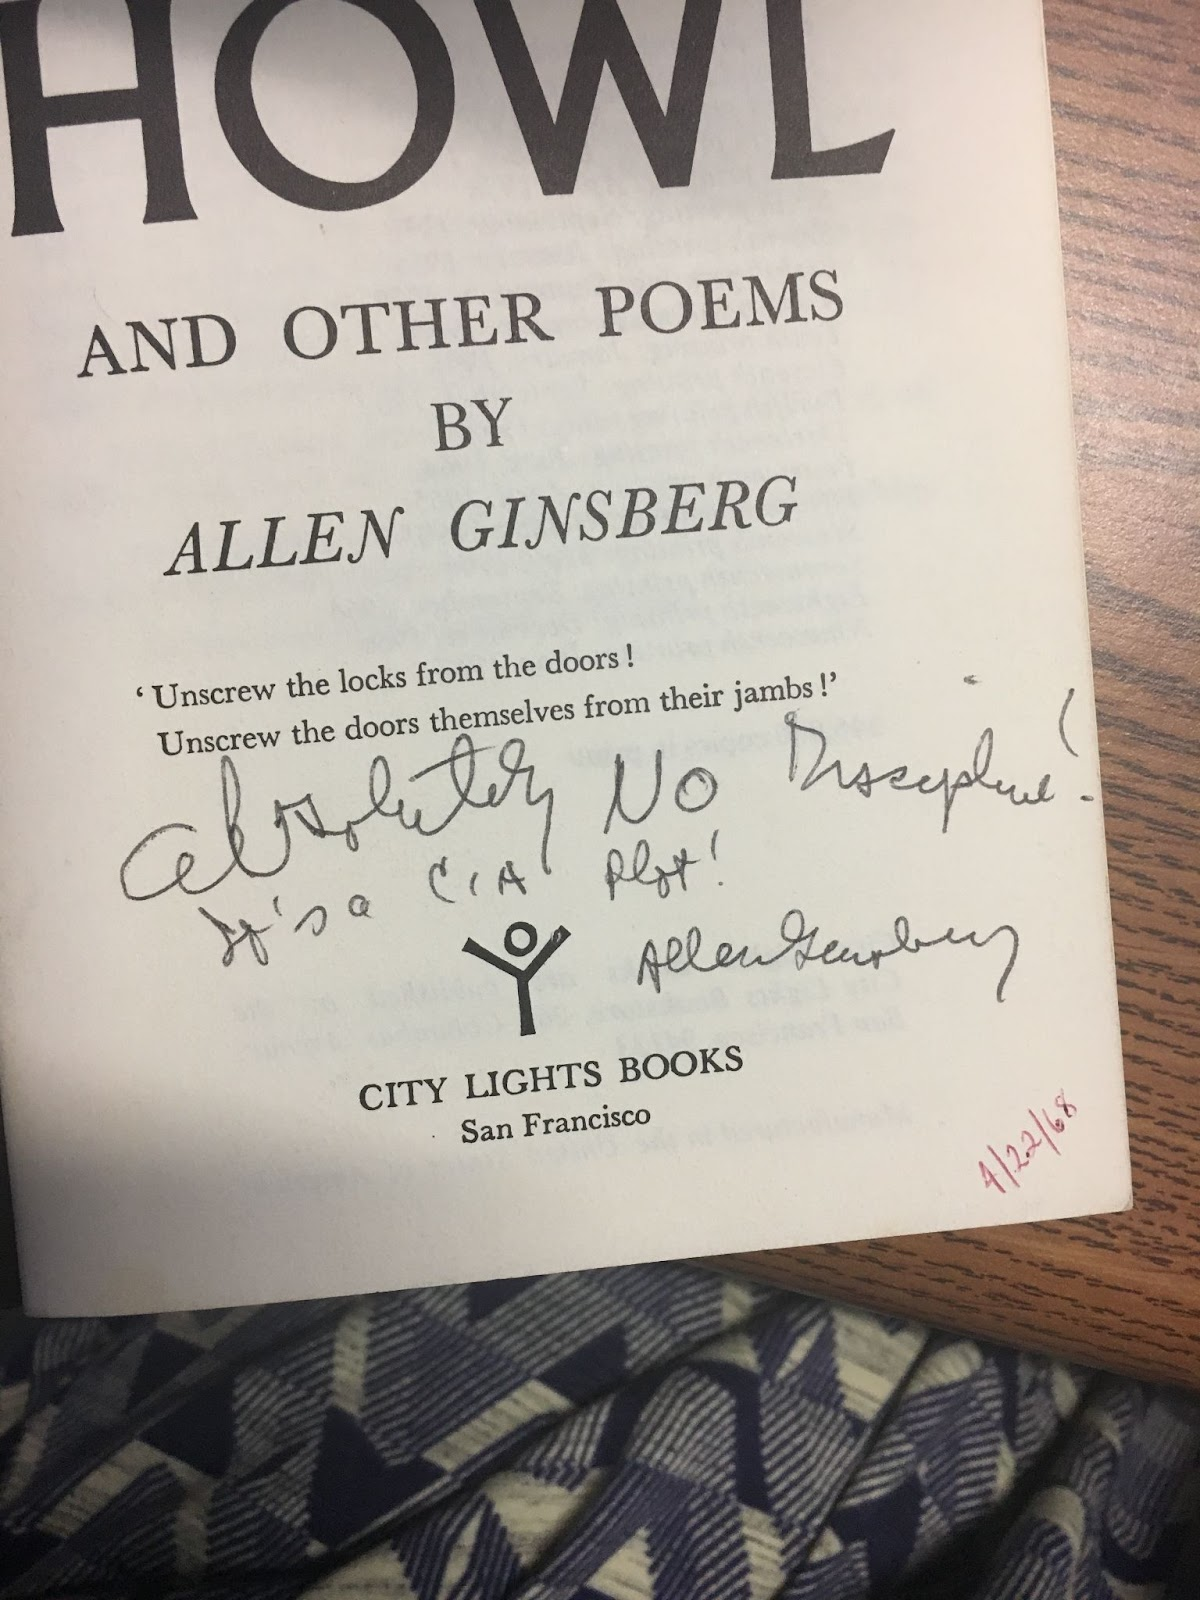 A copy of Allen Ginsberg's Howl signed and inscribed by Ginsberg, held at Naropa's Allen Ginsberg Library.